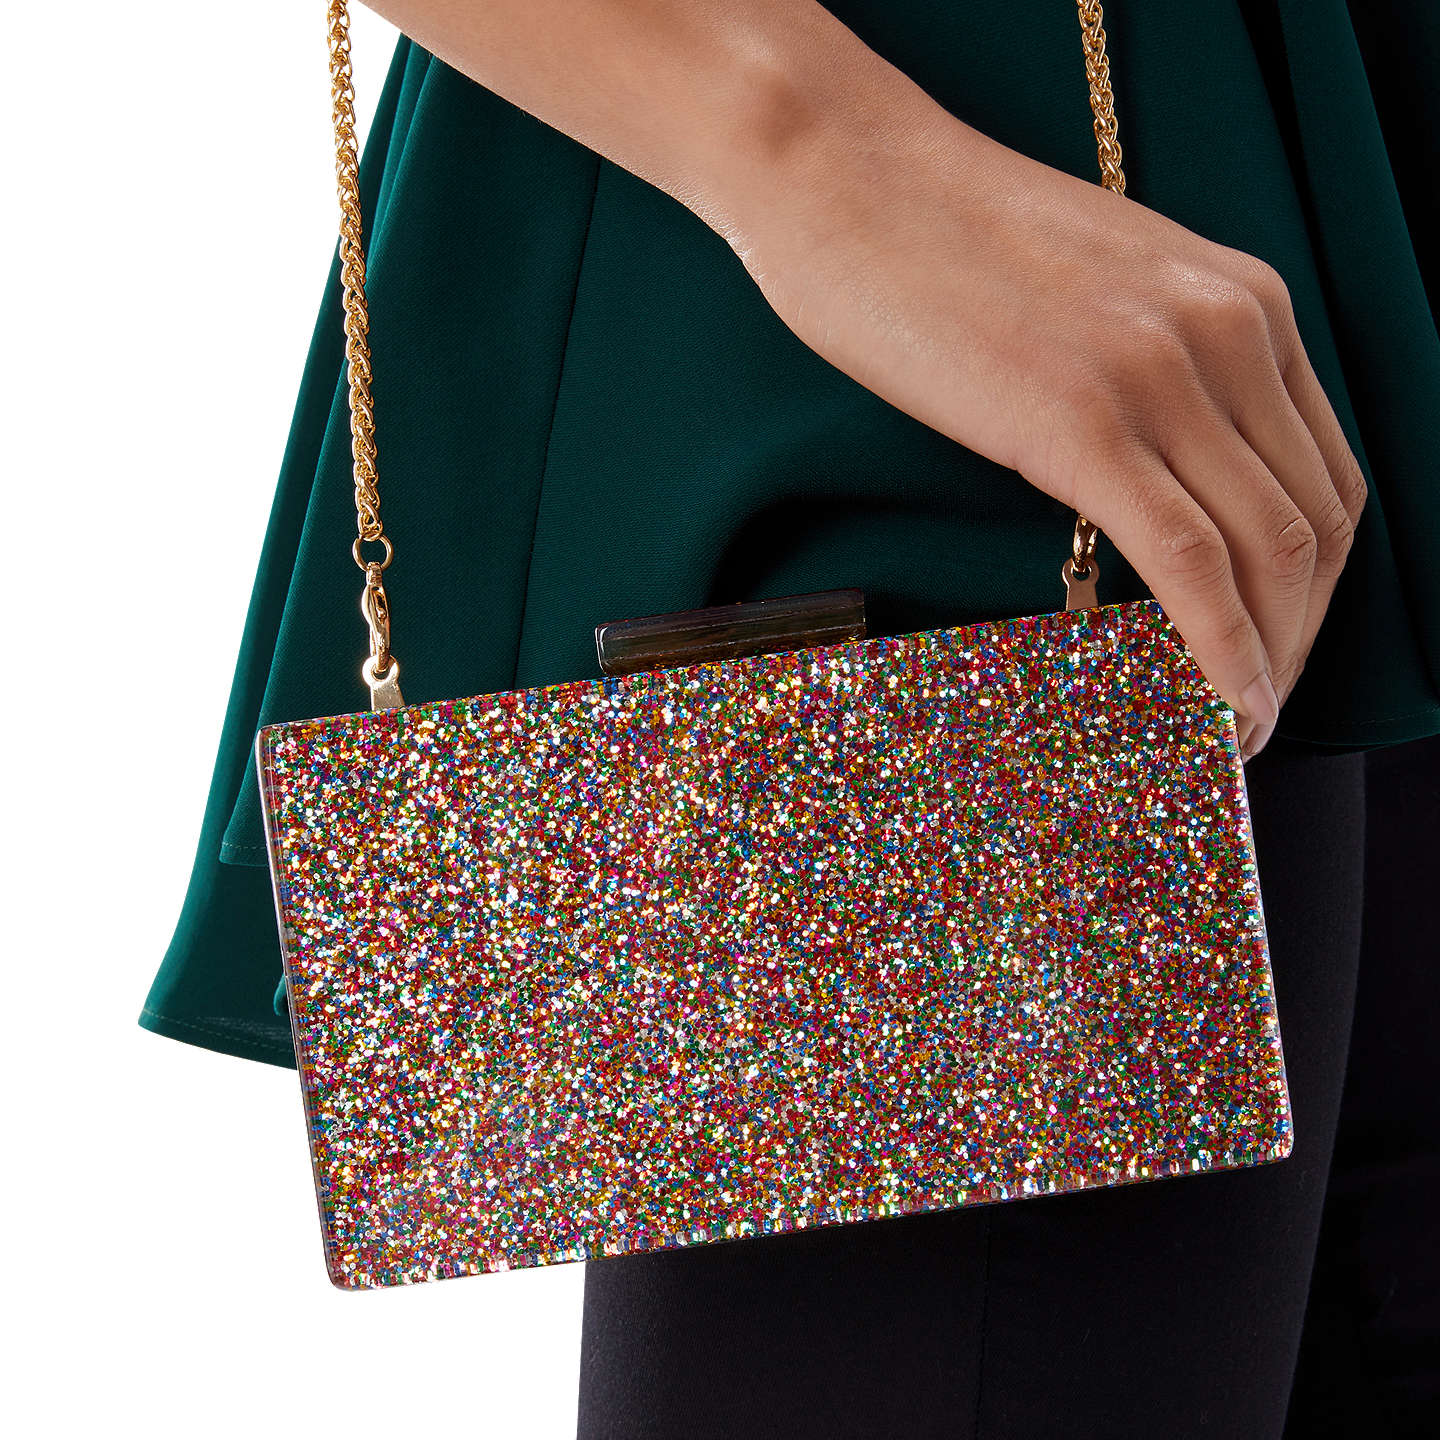 BuyCoast Leola Perspex Clutch Bag, Multi Online at johnlewis.com